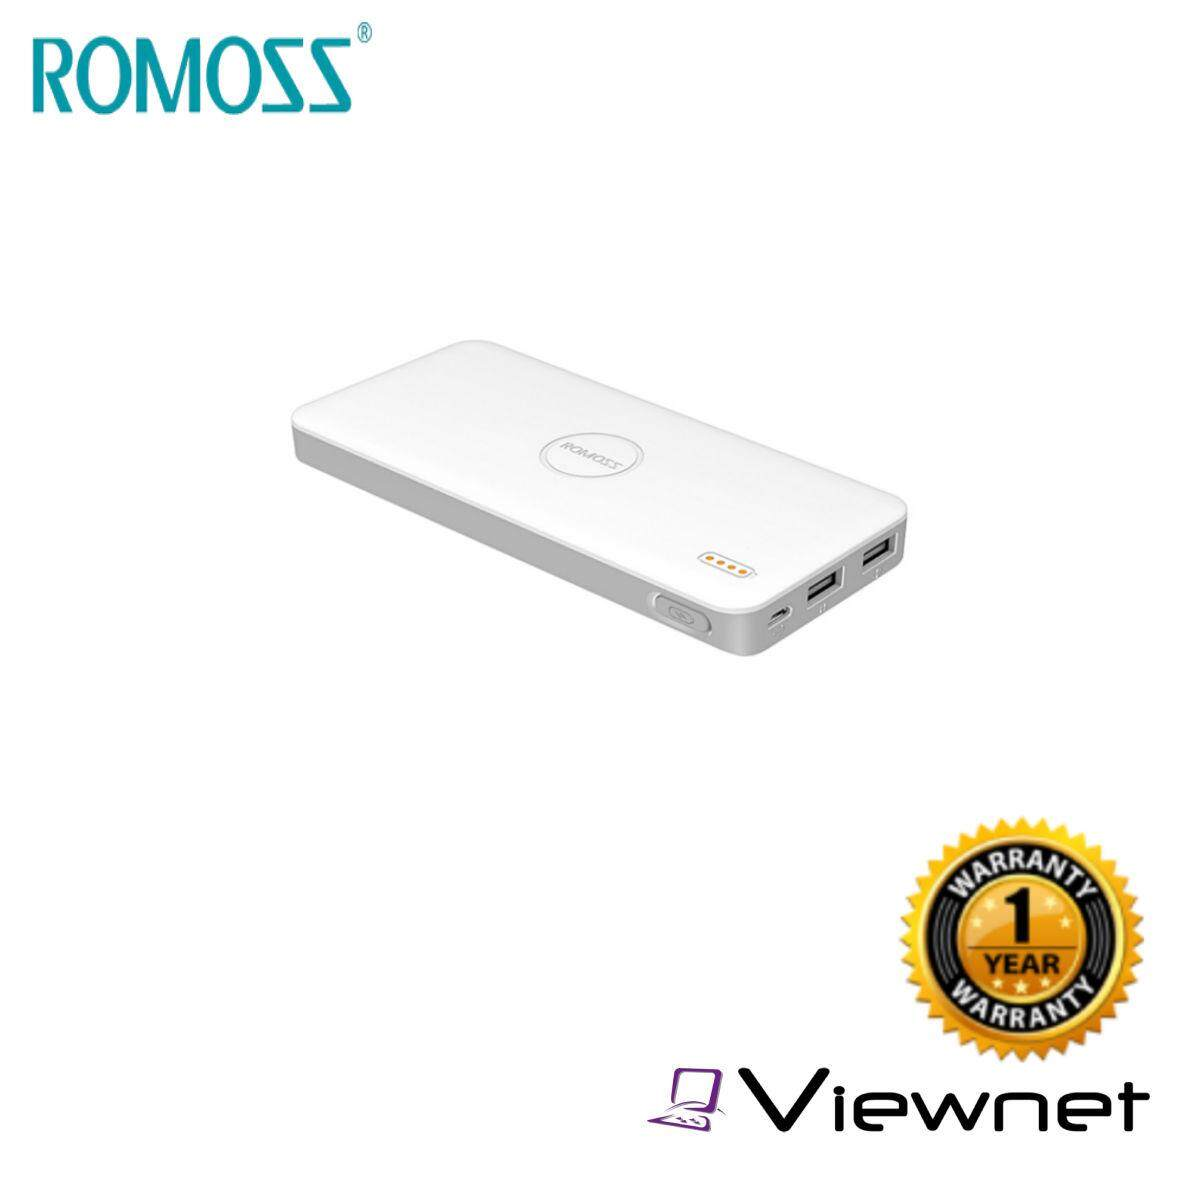 Romoss Power Bank Polymos 10 Air 10000MAH 2.1A (PB10-403-01) With USB Cable